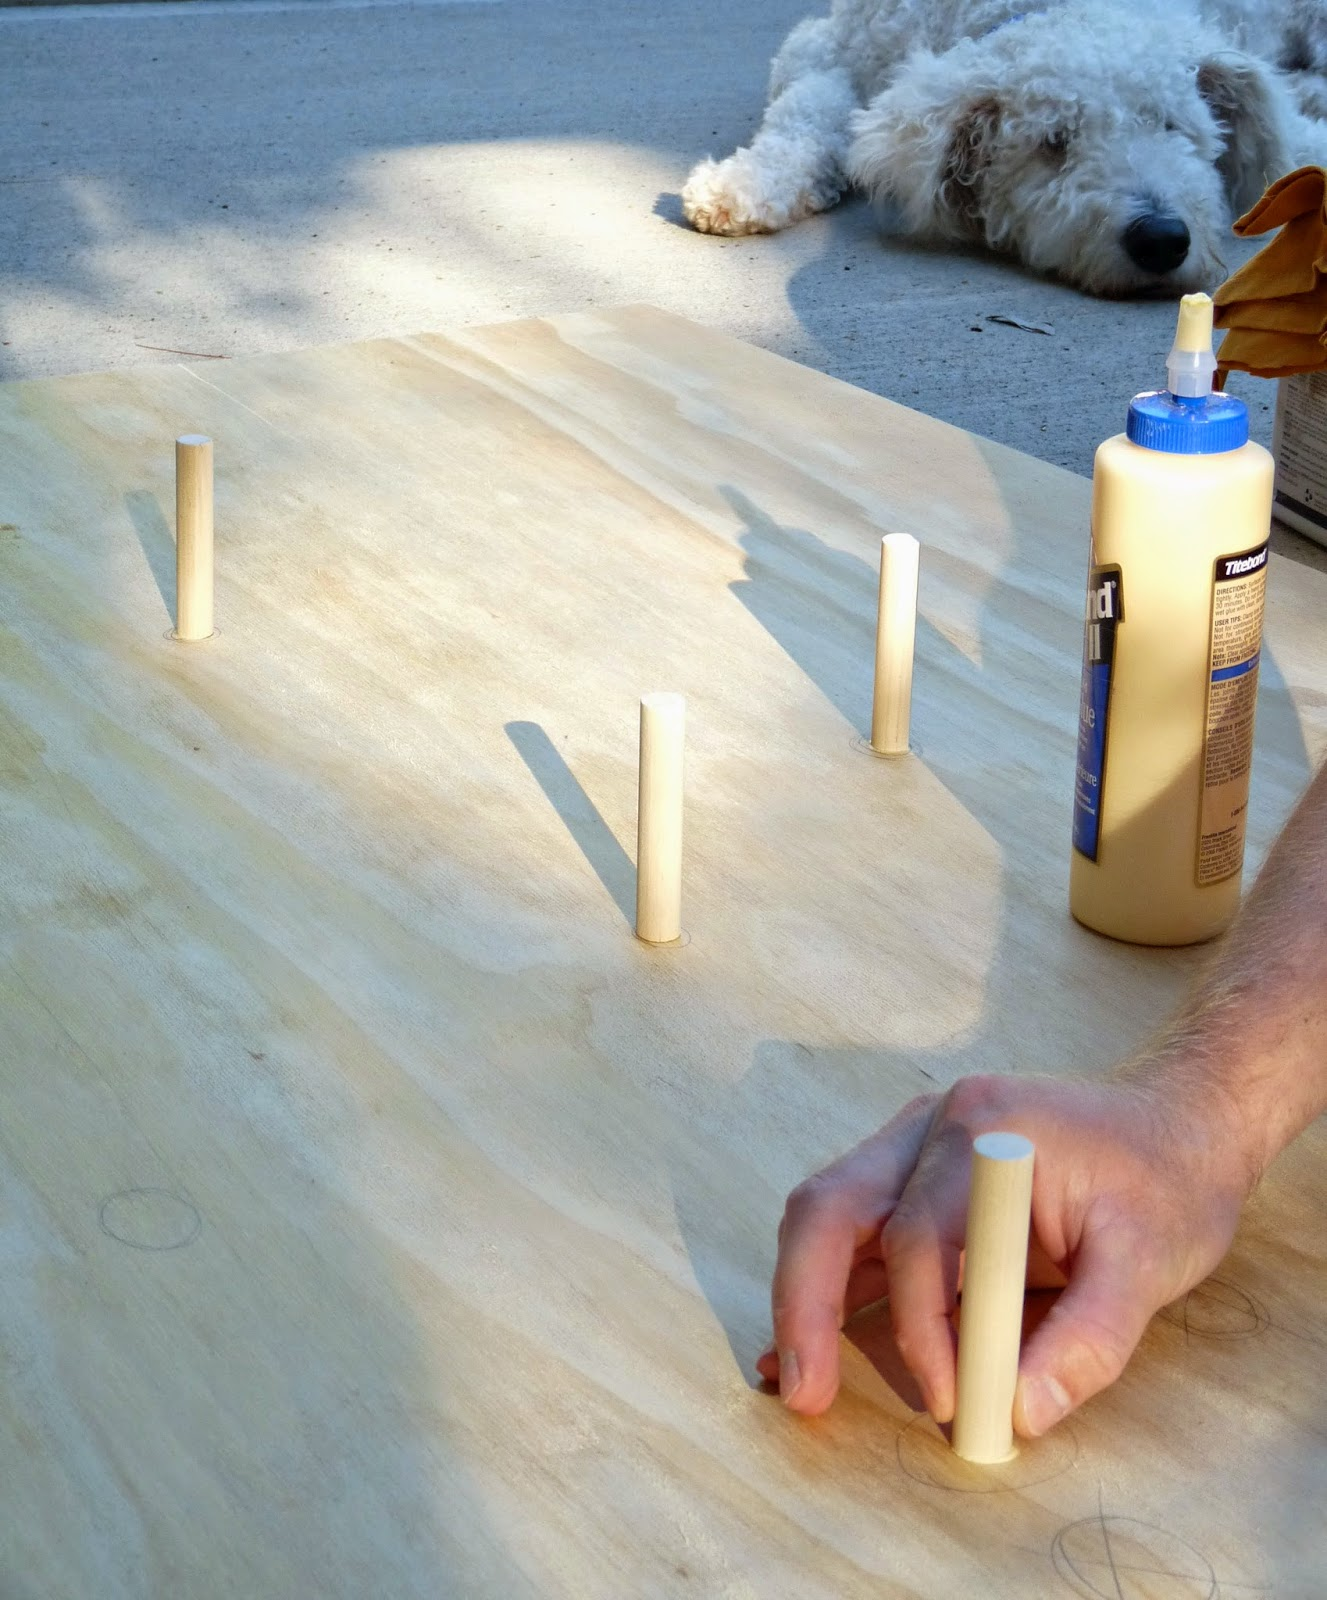 Projects using plywood